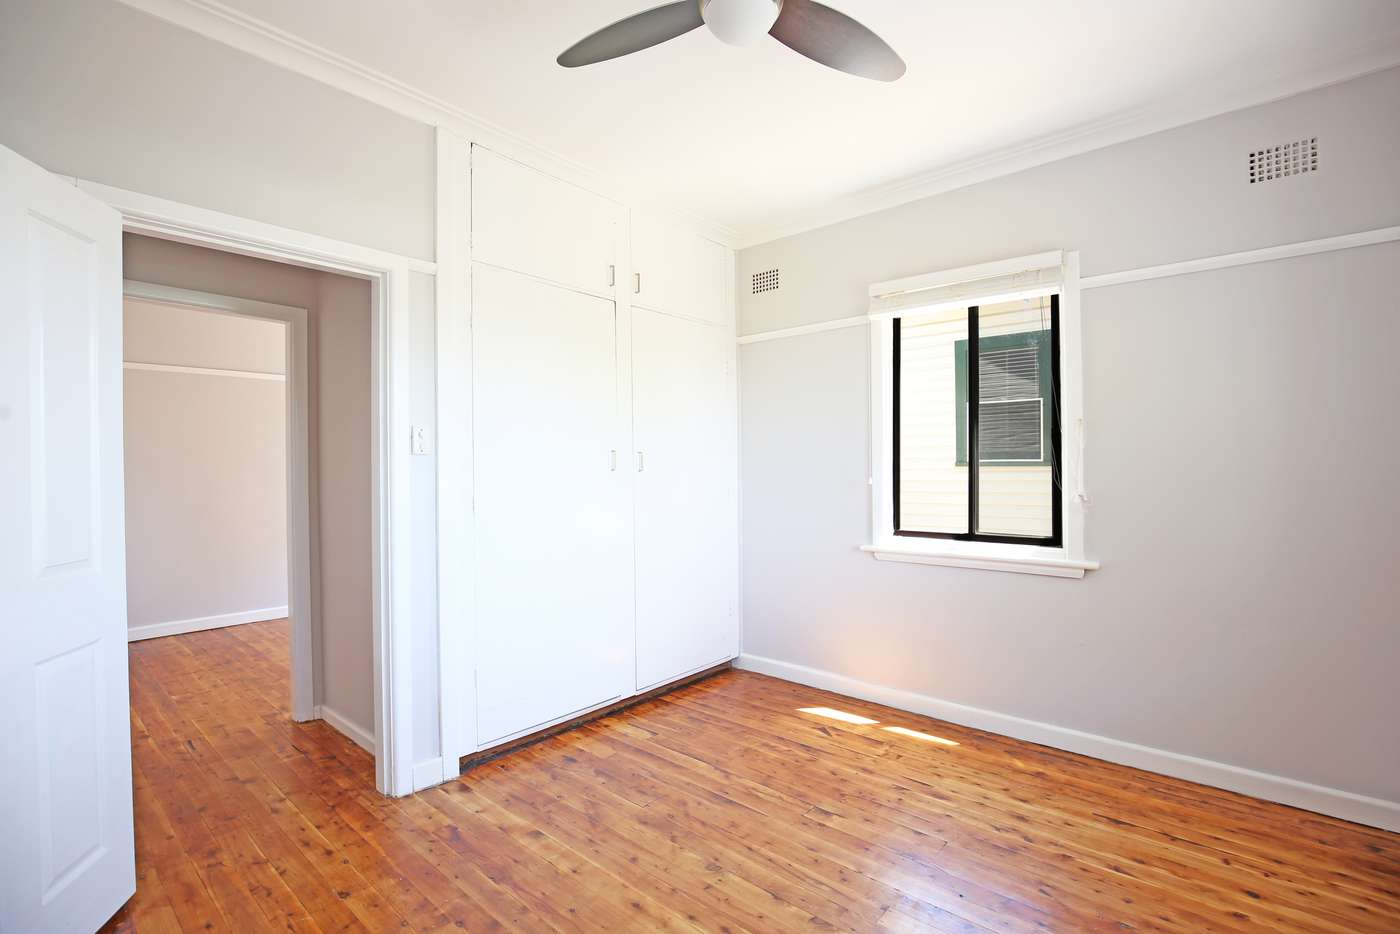 Seventh view of Homely house listing, 17 Lewins Street, Bathurst NSW 2795